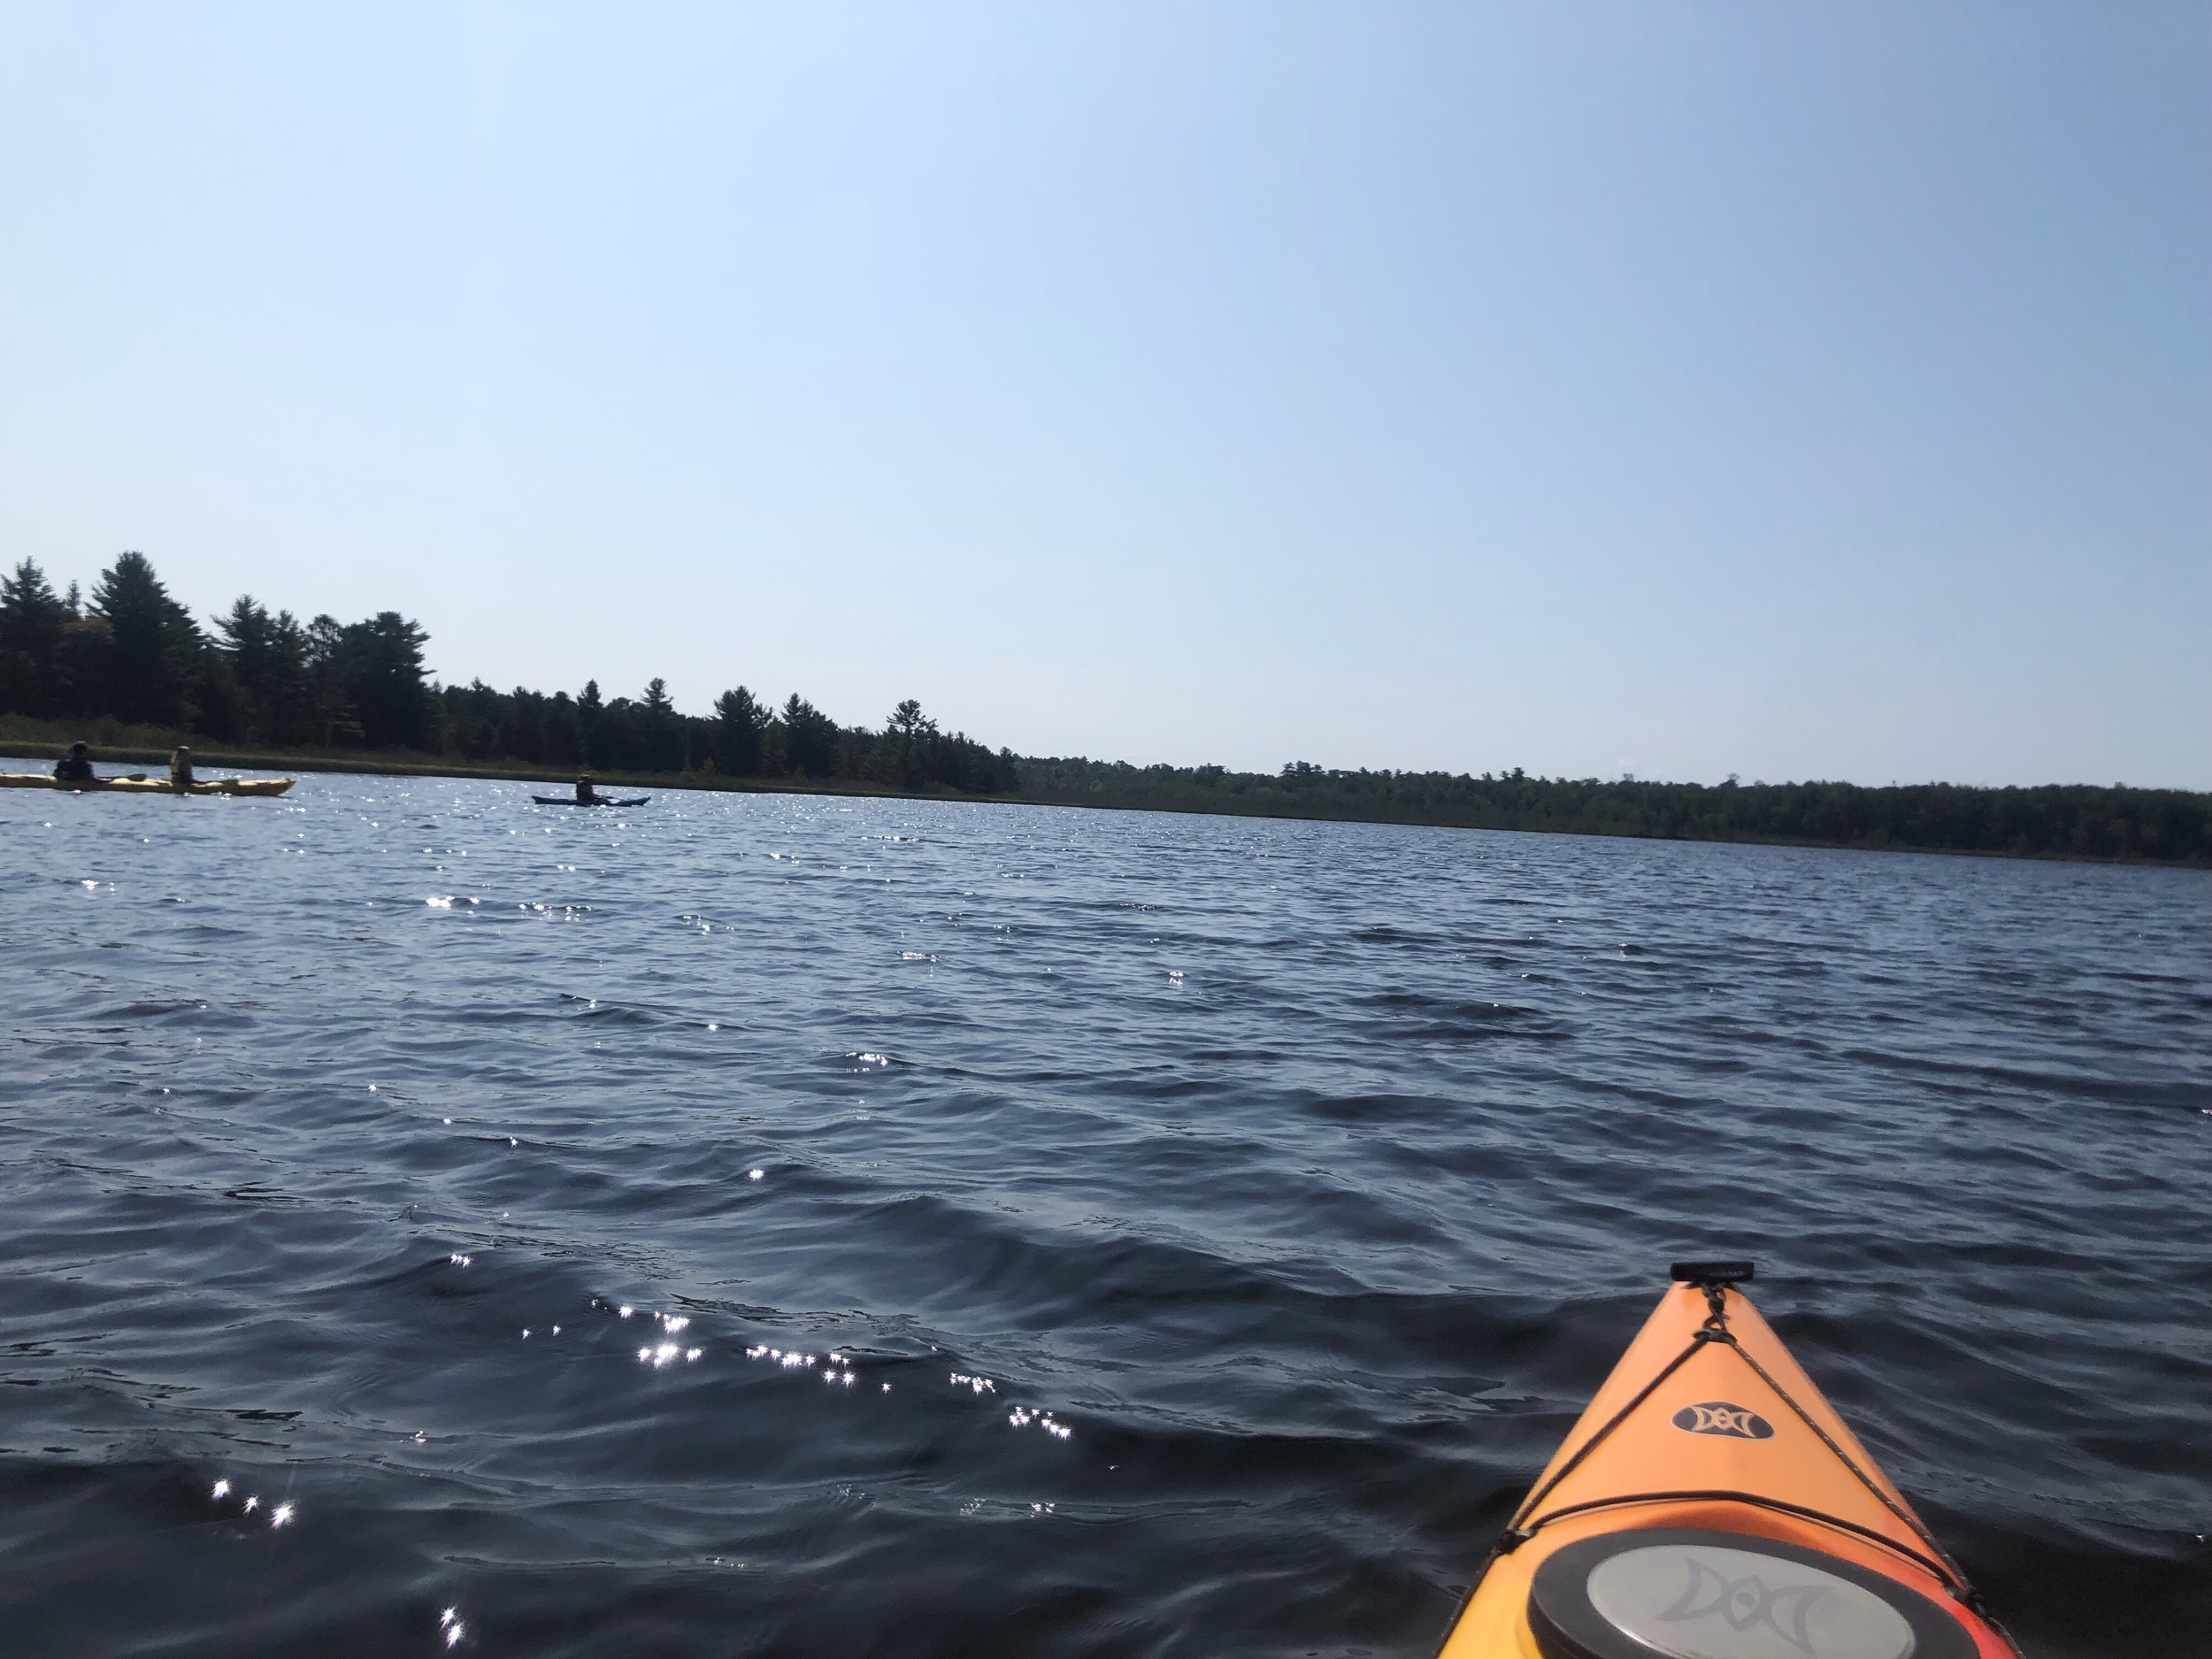 Went kayaking in a lagoon and on Superior